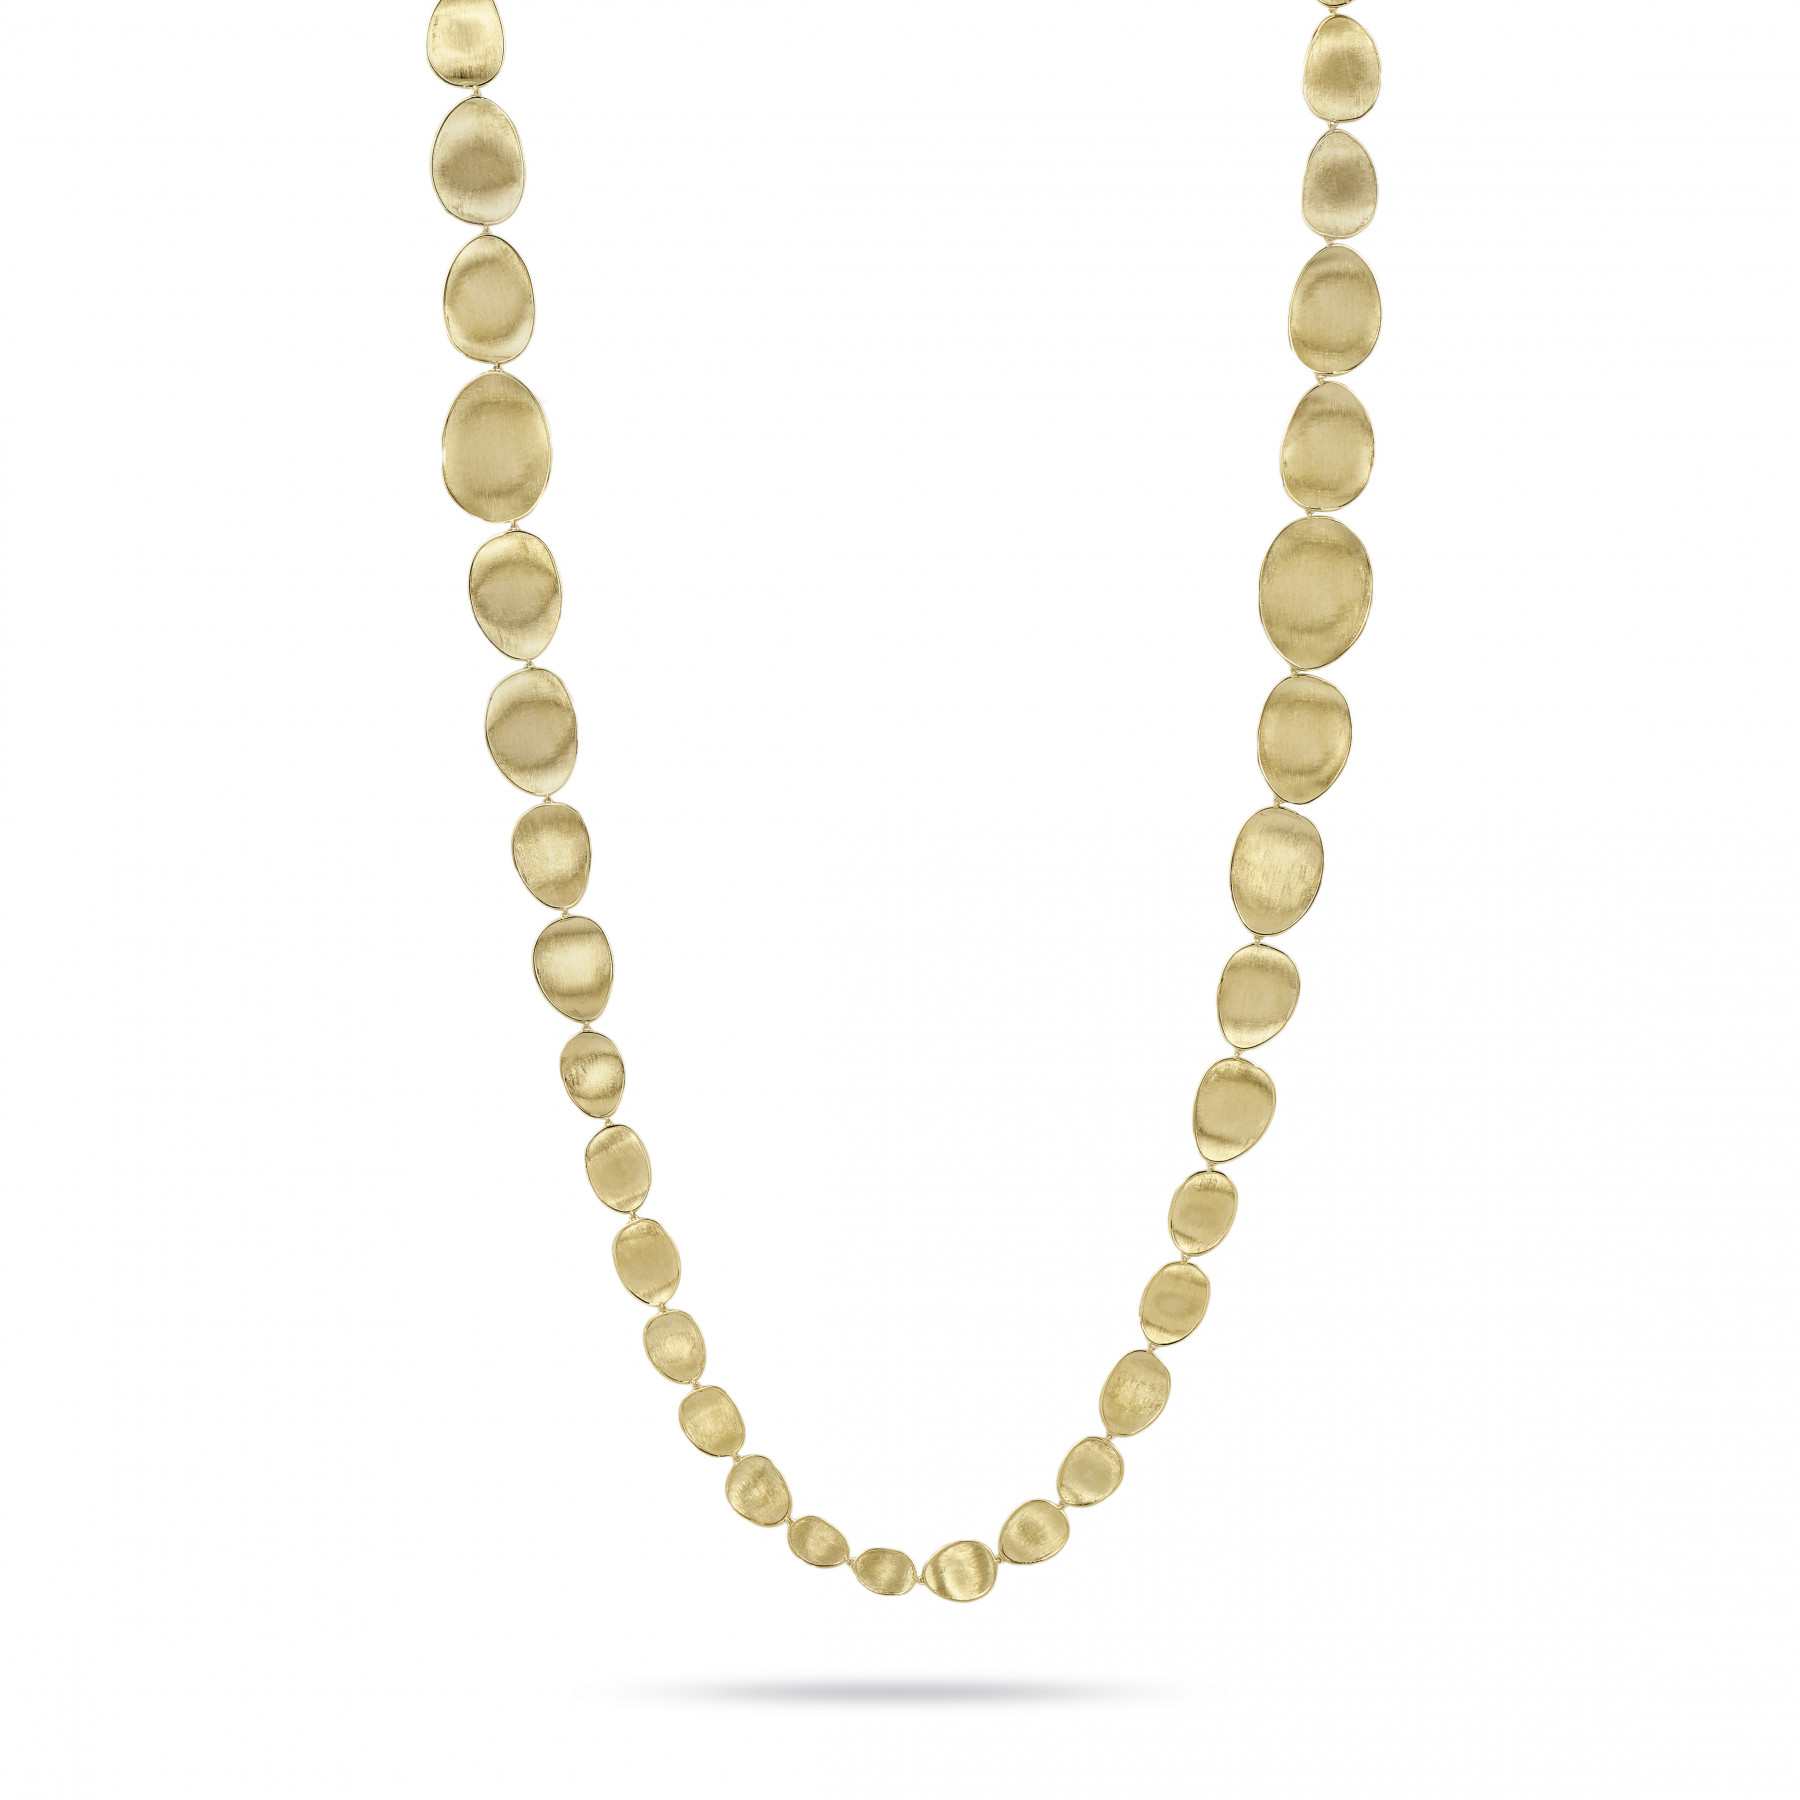 Marco Bicego Lunaria Yellow Gold Necklace